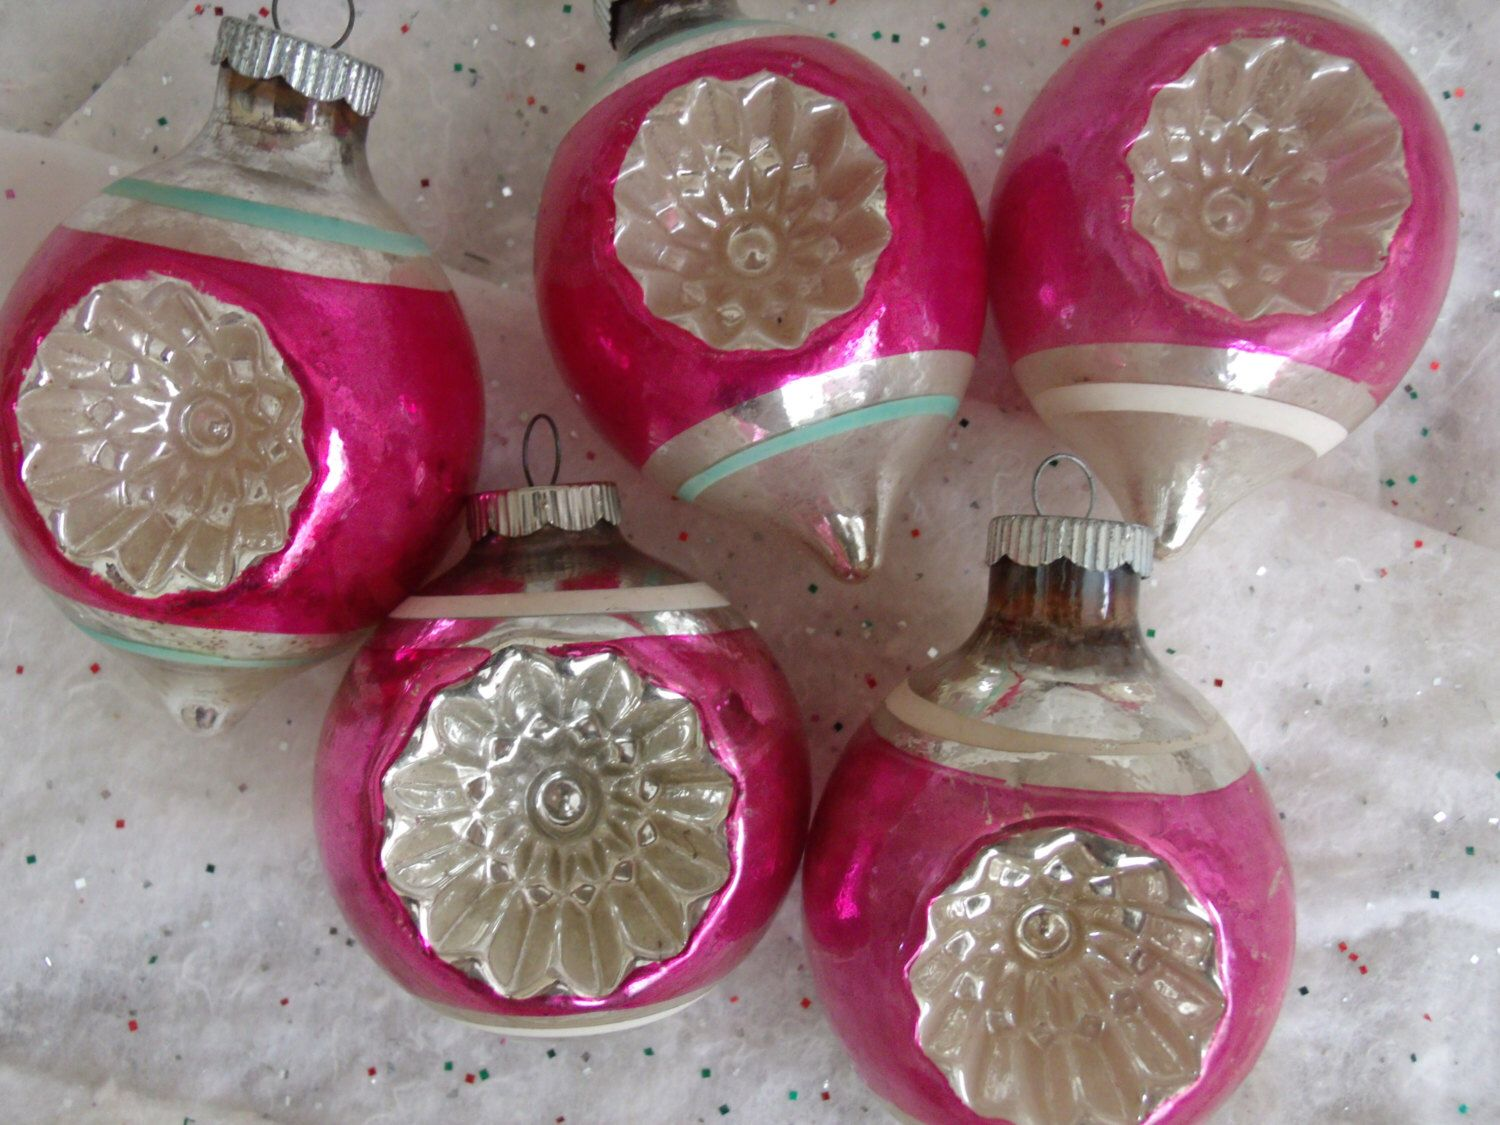 Vintage Glass Christmas Ornaments, WWII Ornaments Lot, Vintage Pink Striped Double Indent Ornament Lot by greatvintagefun on Etsy https://www.etsy.com/listing/243519630/vintage-glass-christmas-ornaments-wwii